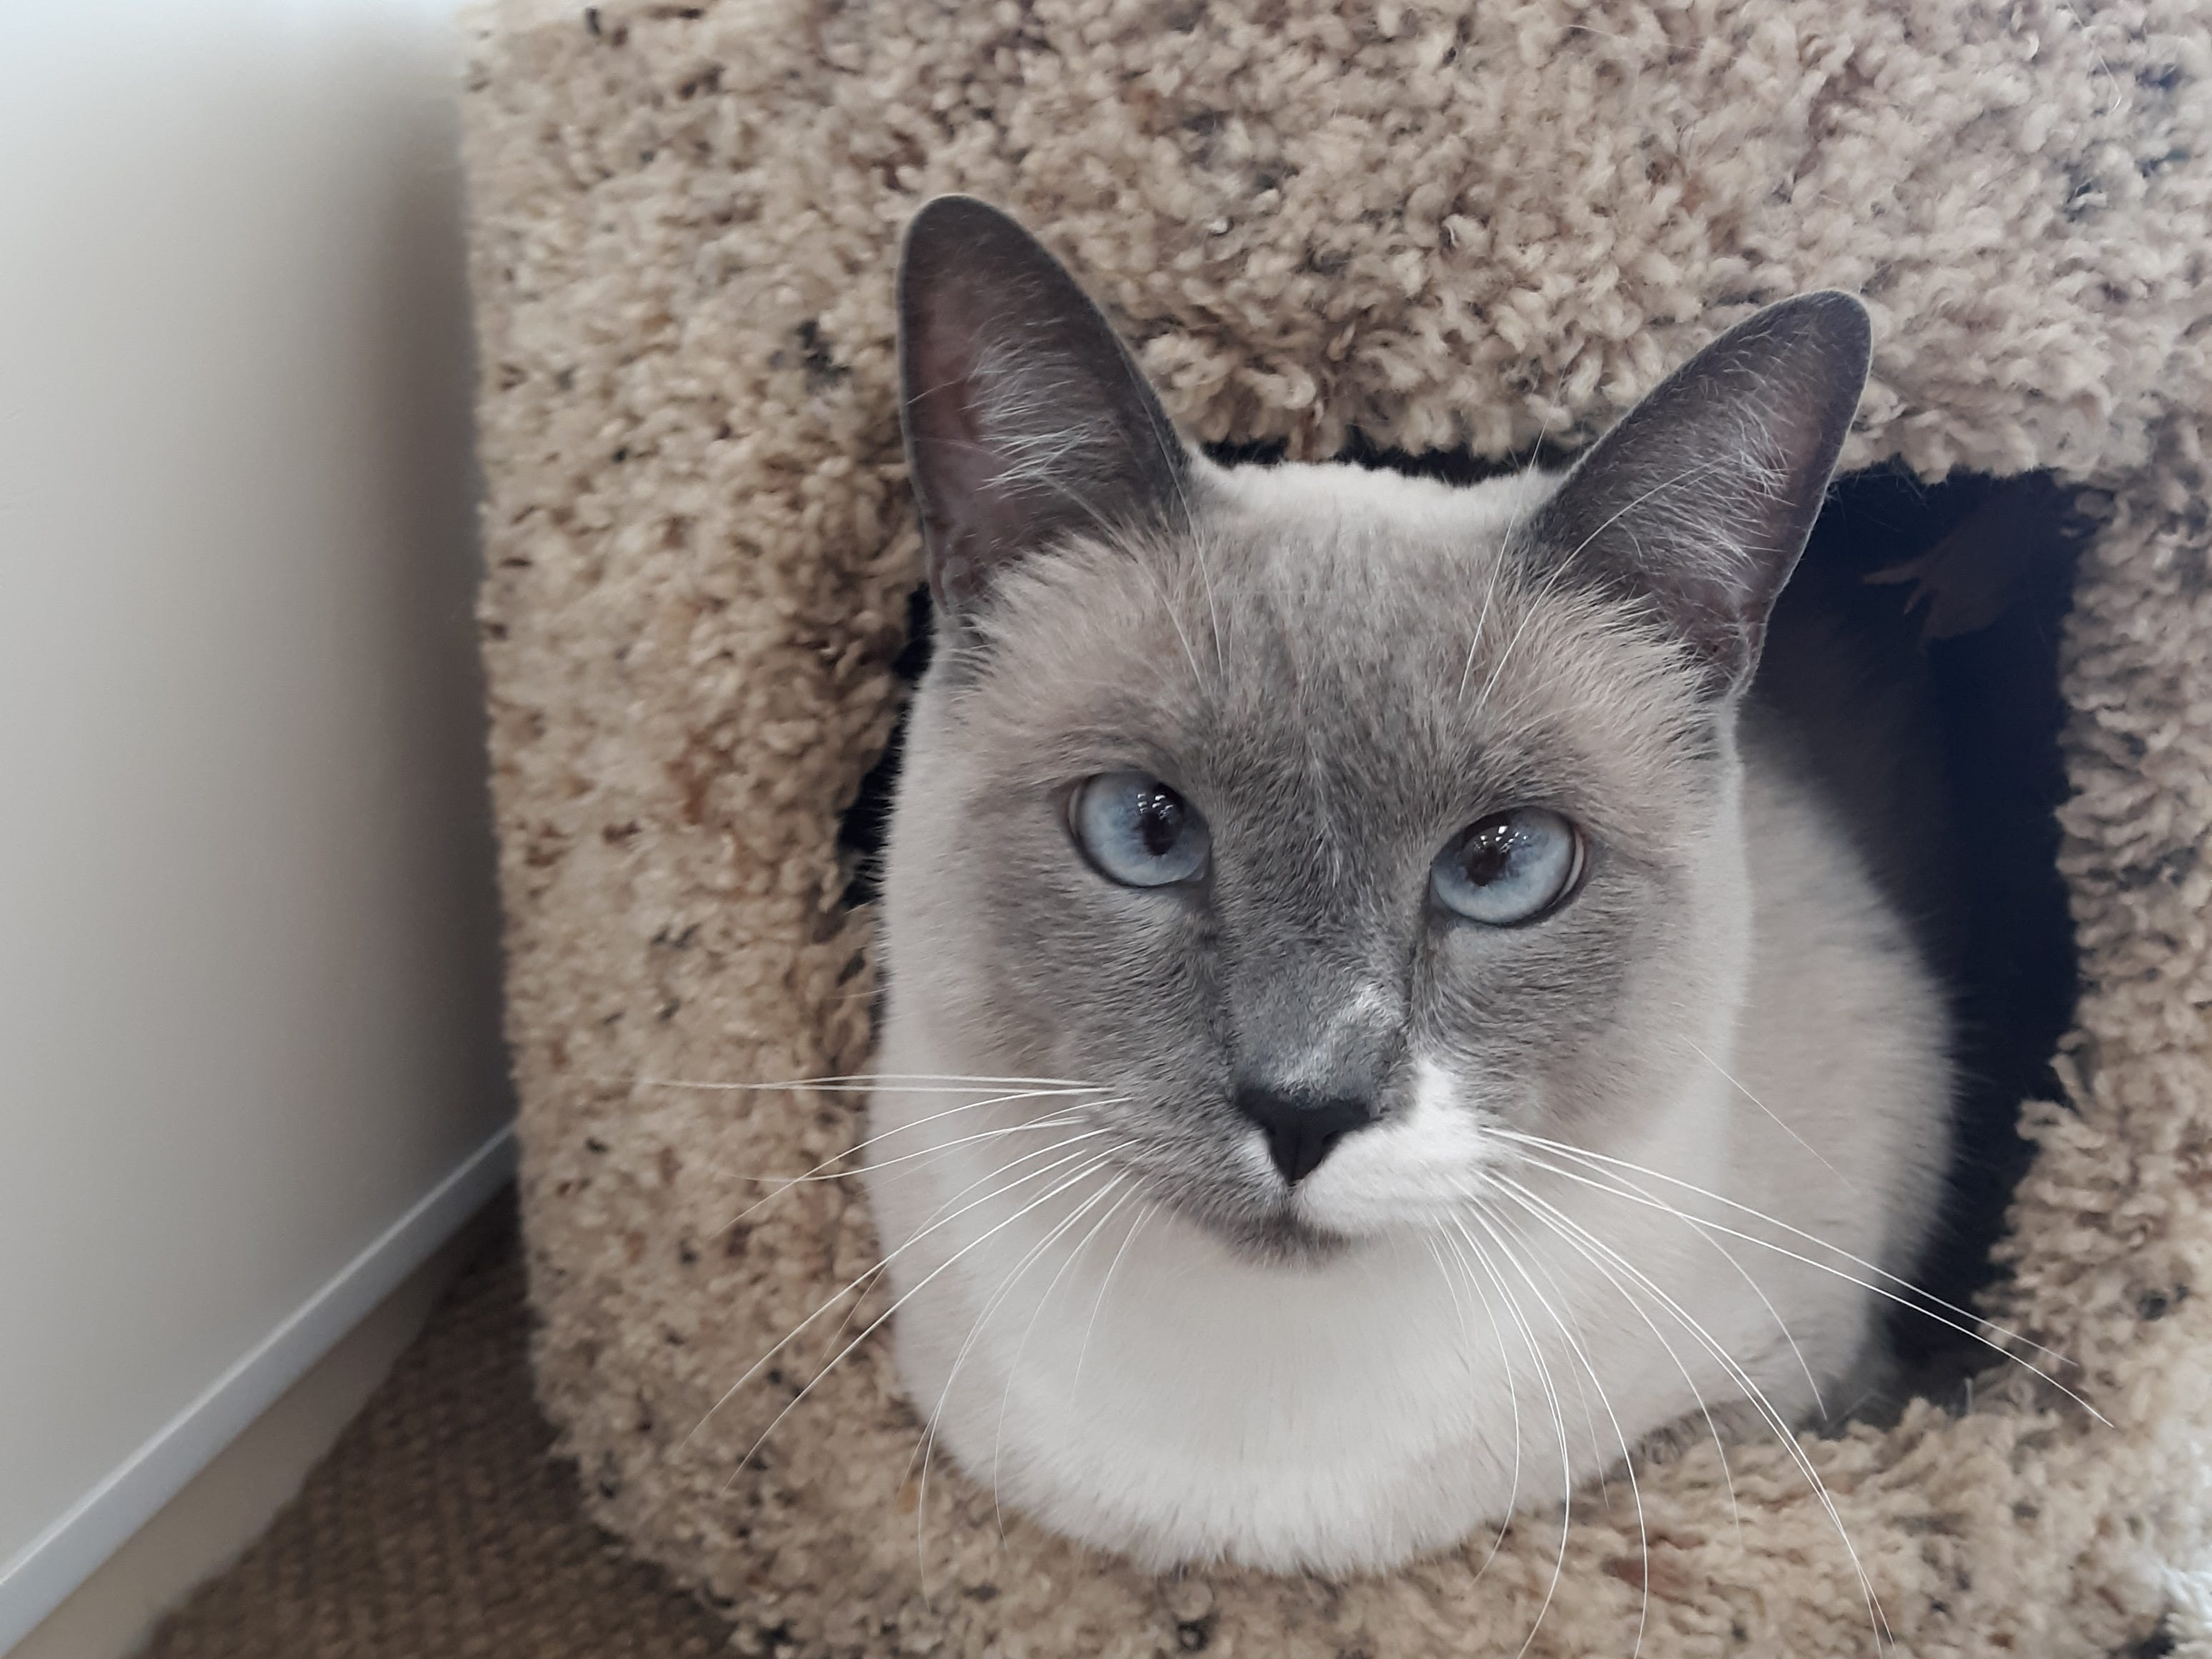 Taz is a 4-year-old, male blue-point Siamese. He's very loving and gets along with other cats. All animal adoptions include spaying or neutering and vaccinations. Apply with Another Chance Animal Welfare League at www.acawl.org. Call 356-0698.